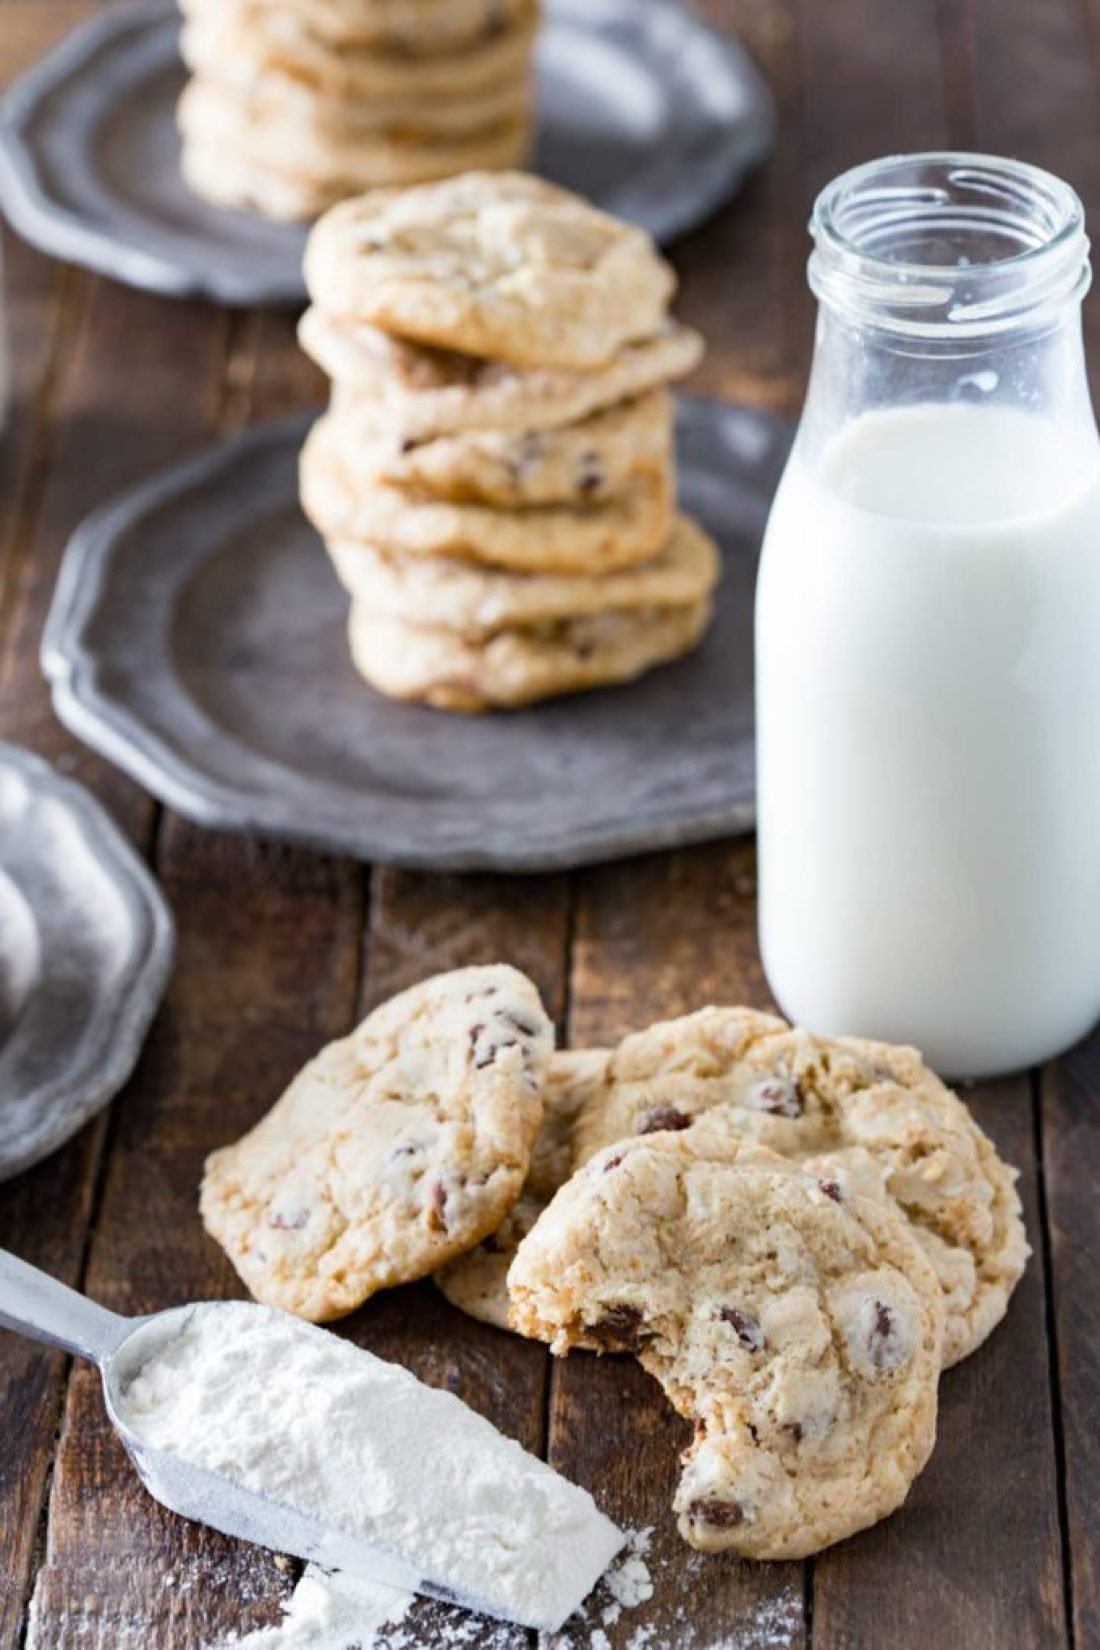 Graham cracker chocolate chip cookies are delicious and easy to make